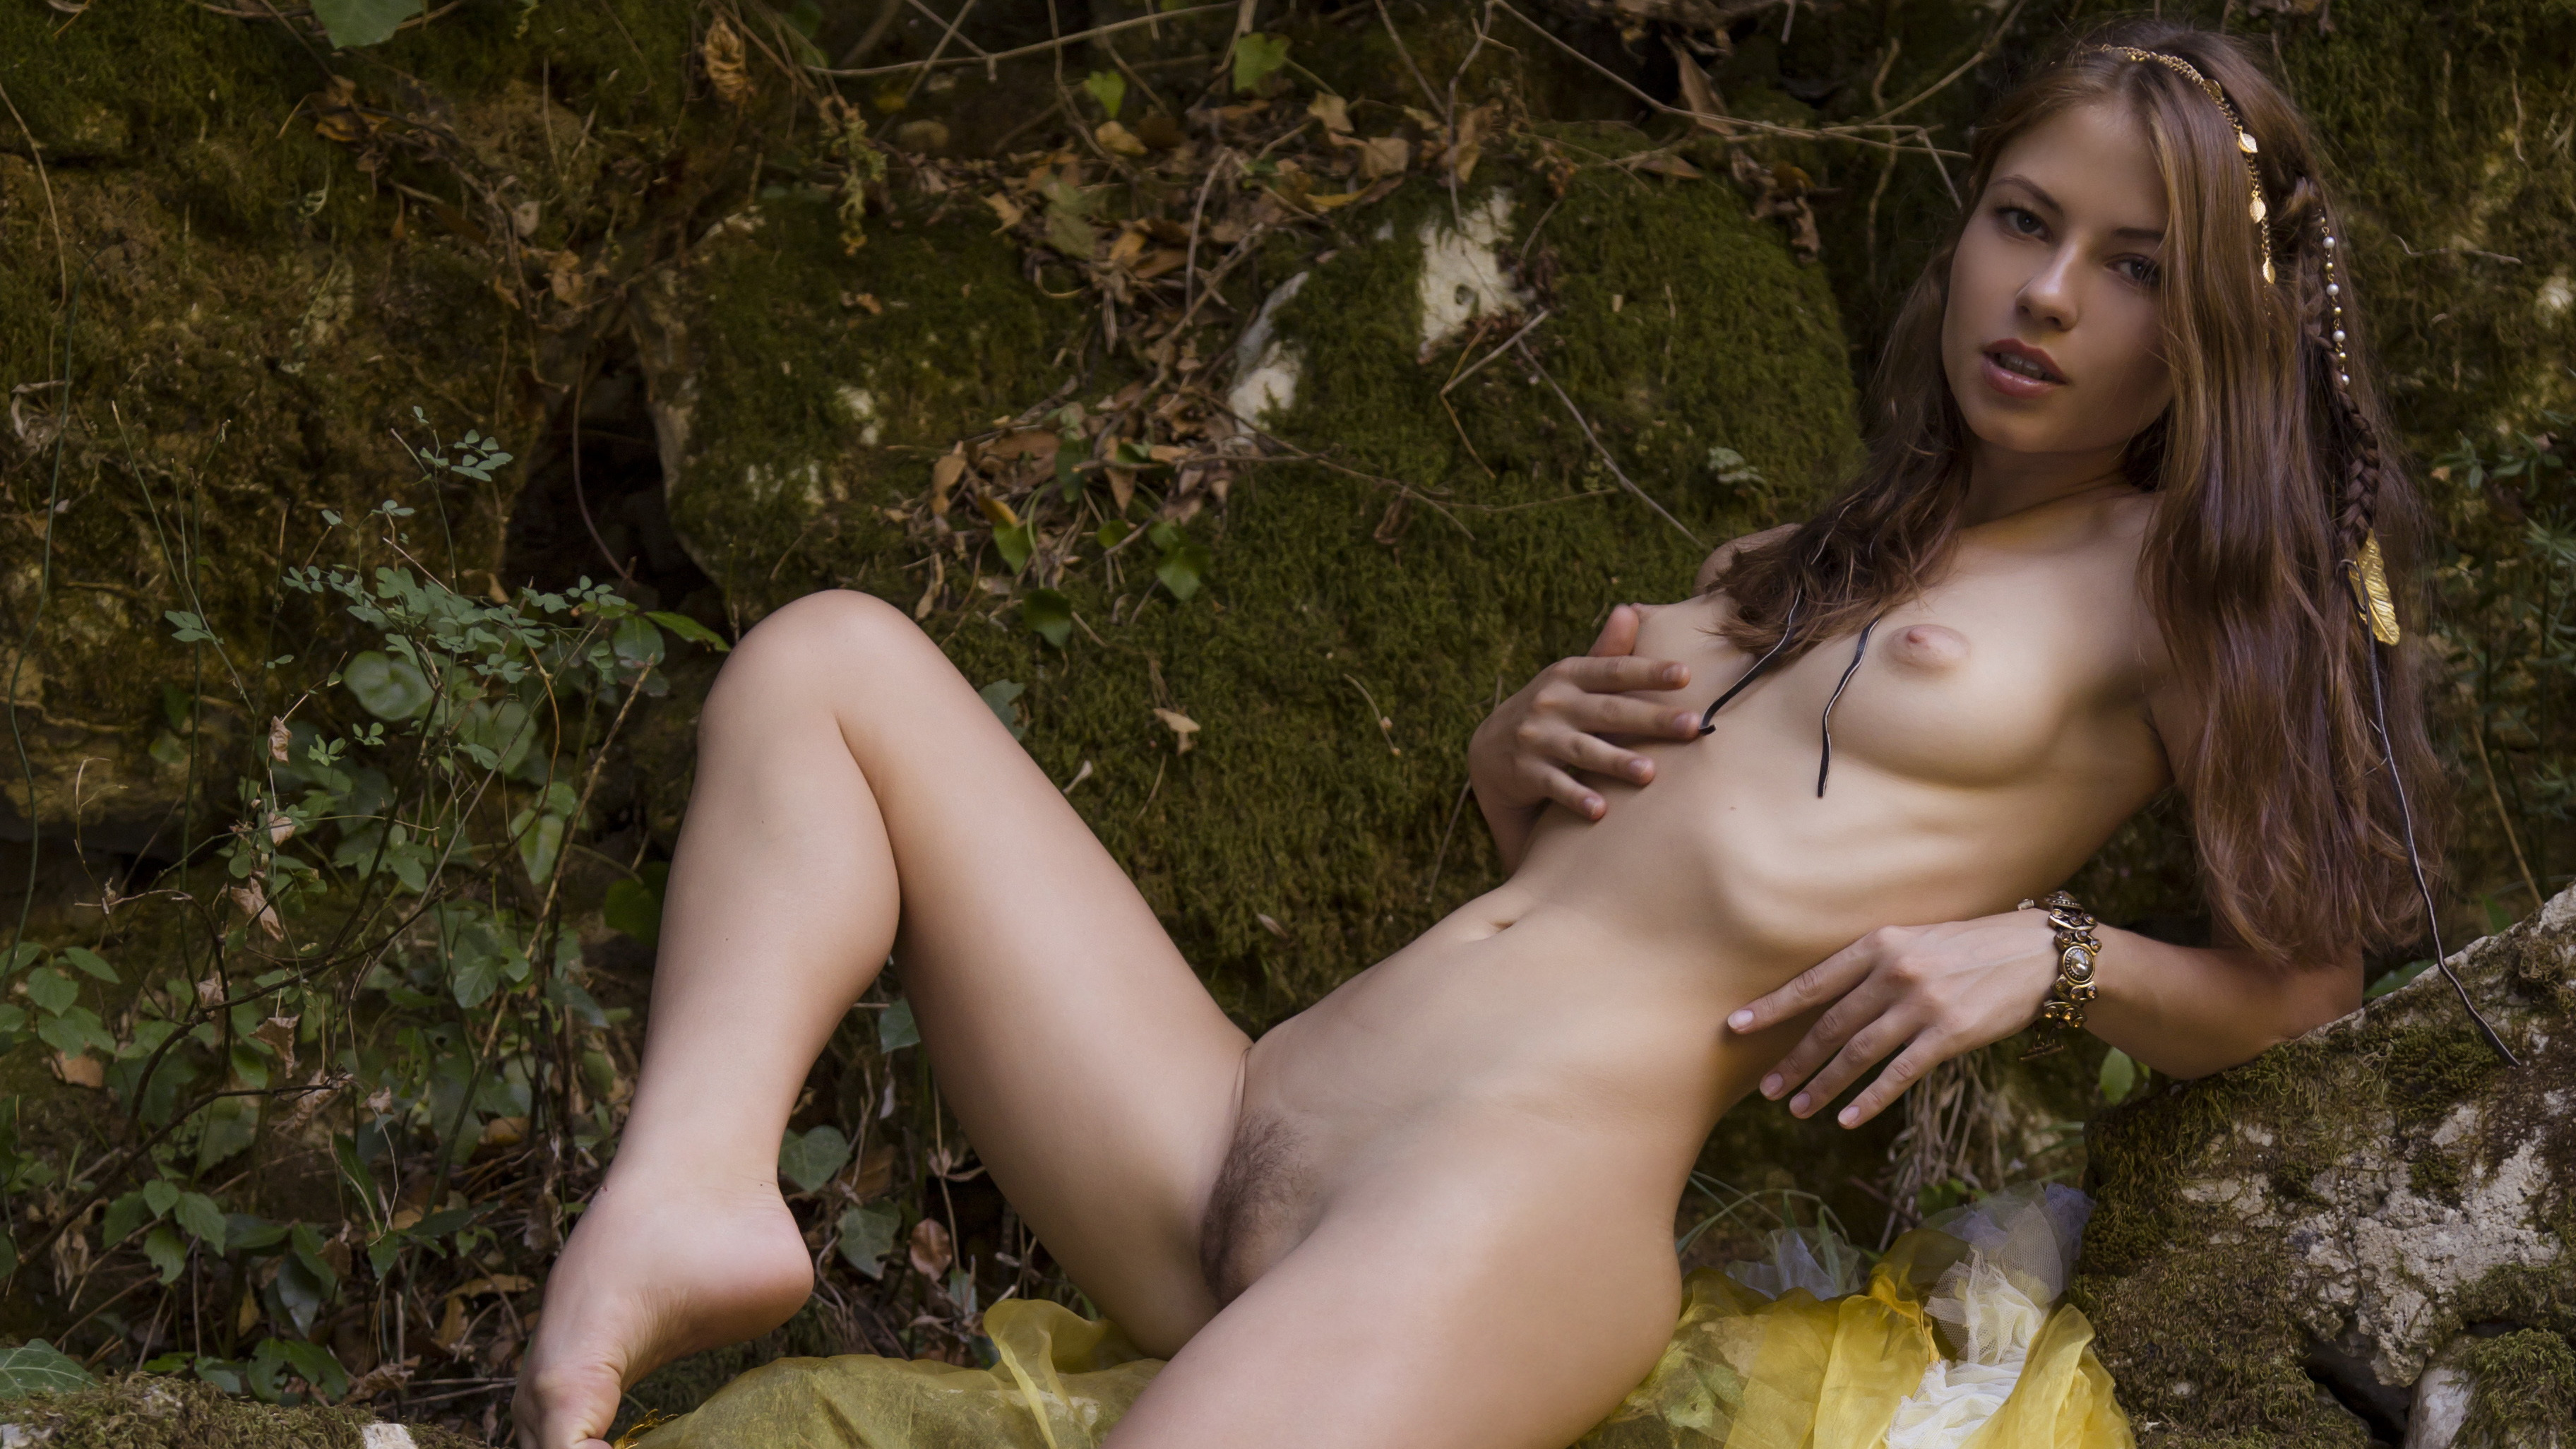 Hairy nude artistic